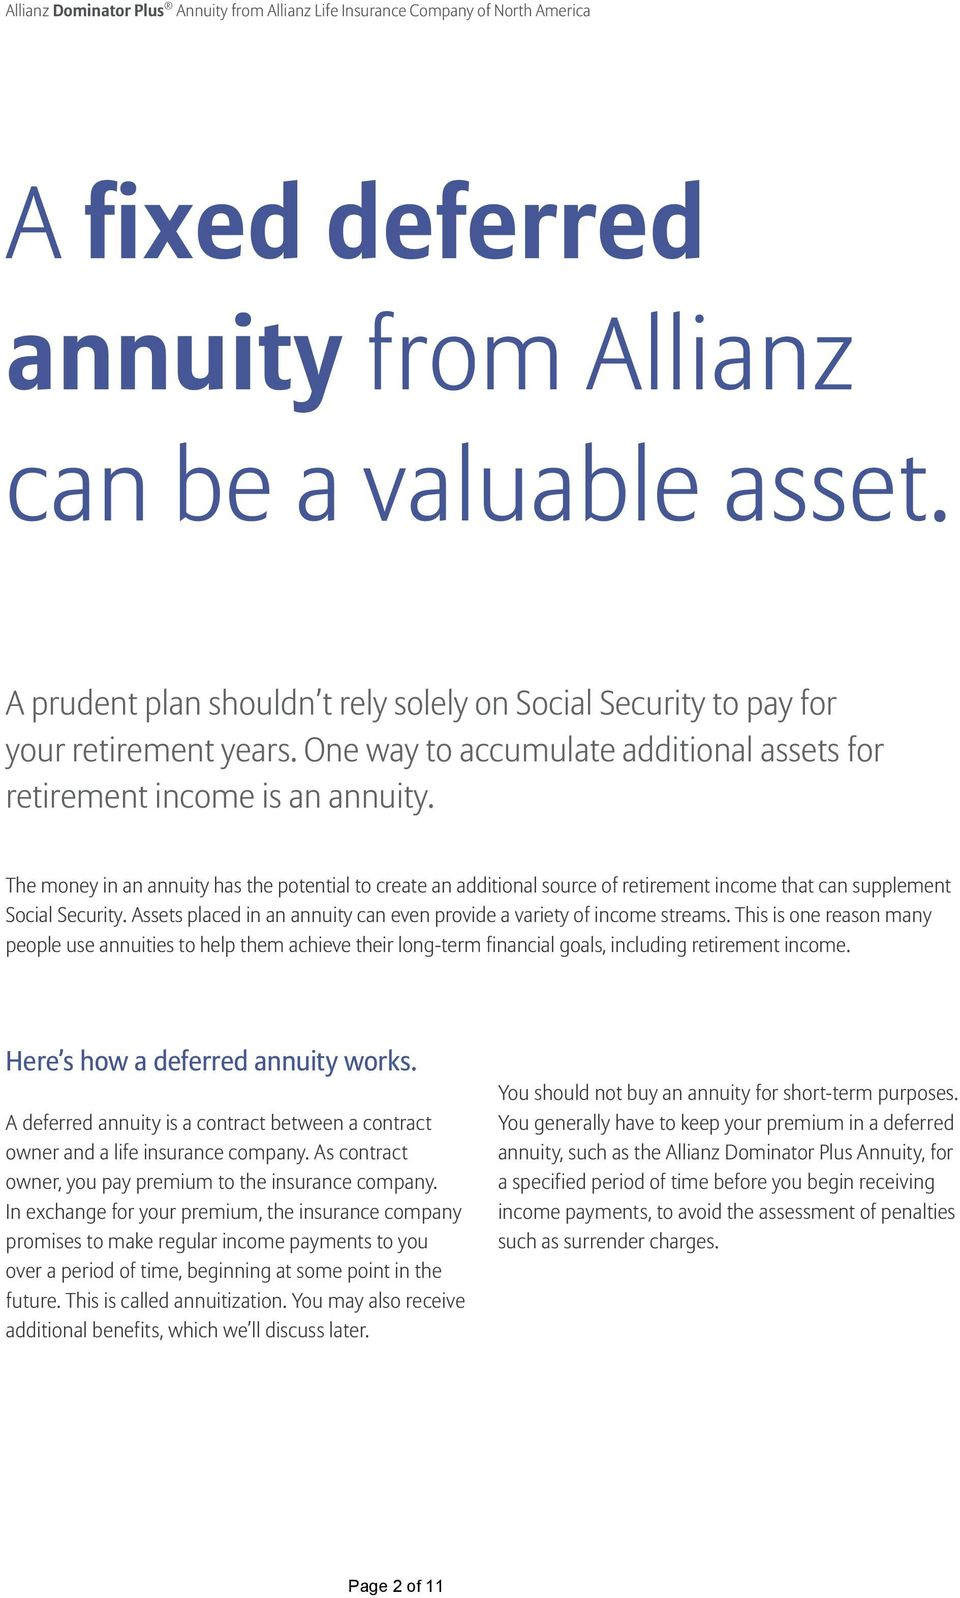 The money in an annuity has the potential to create an additional source of retirement income that can supplement Social Security.